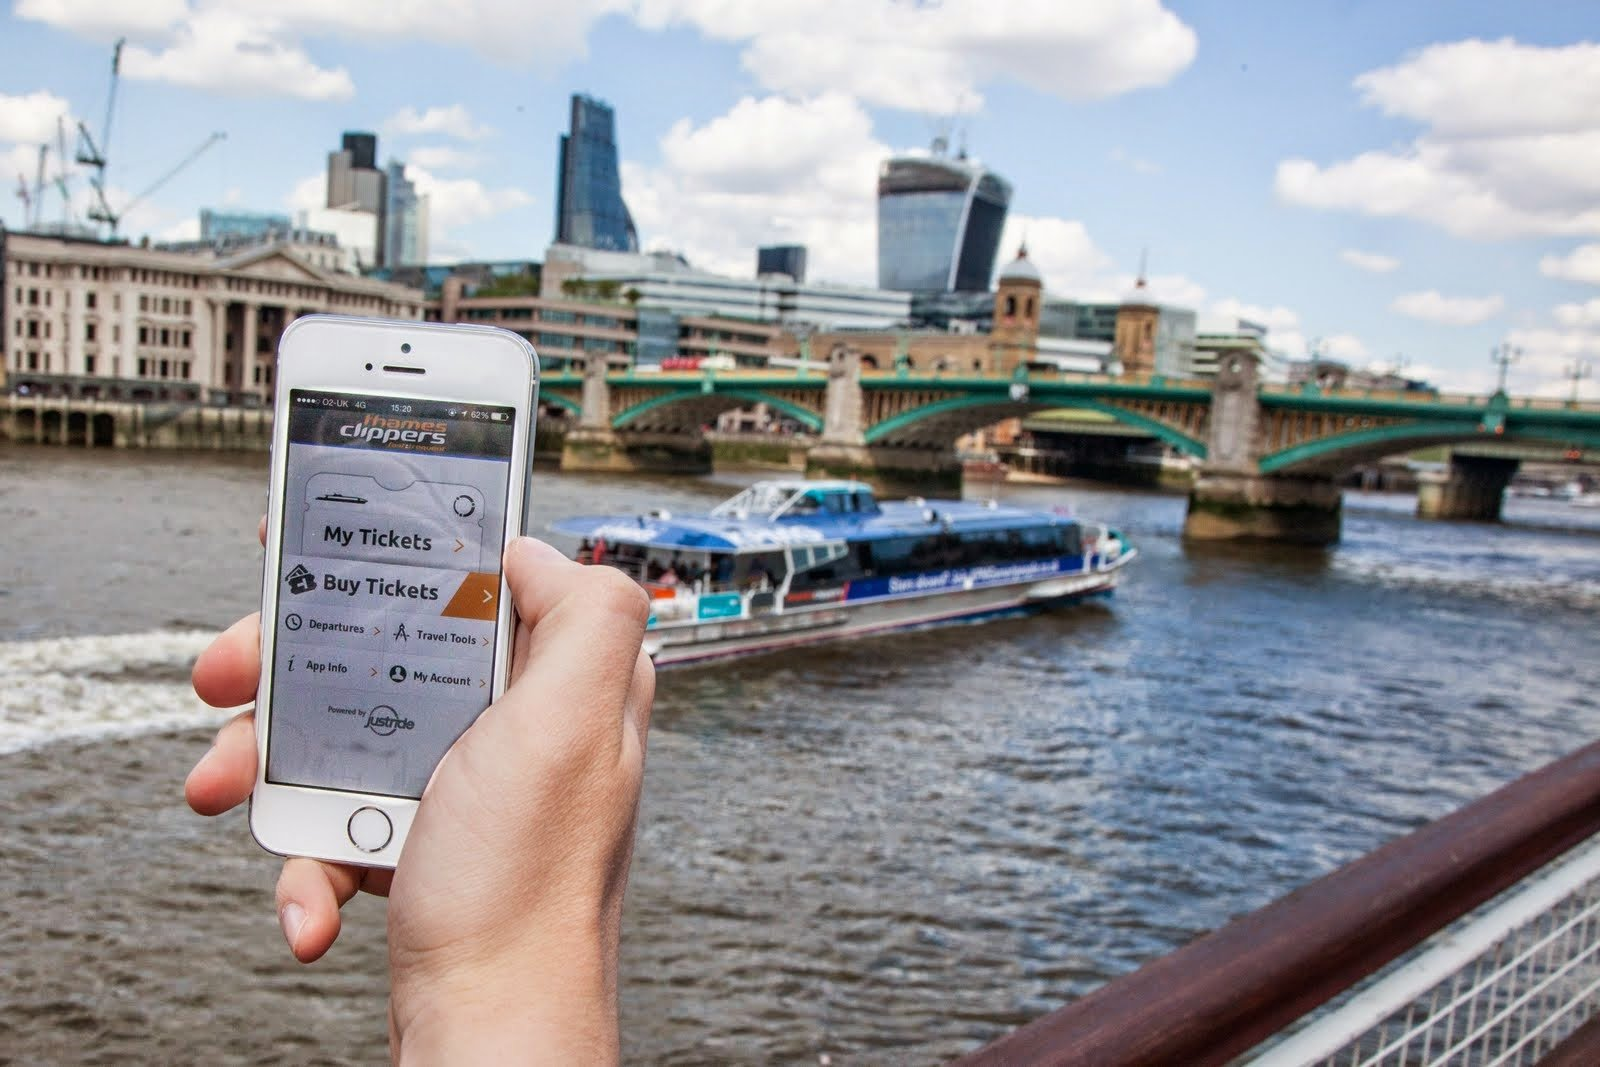 Thames Clippers Mobile Ticket App